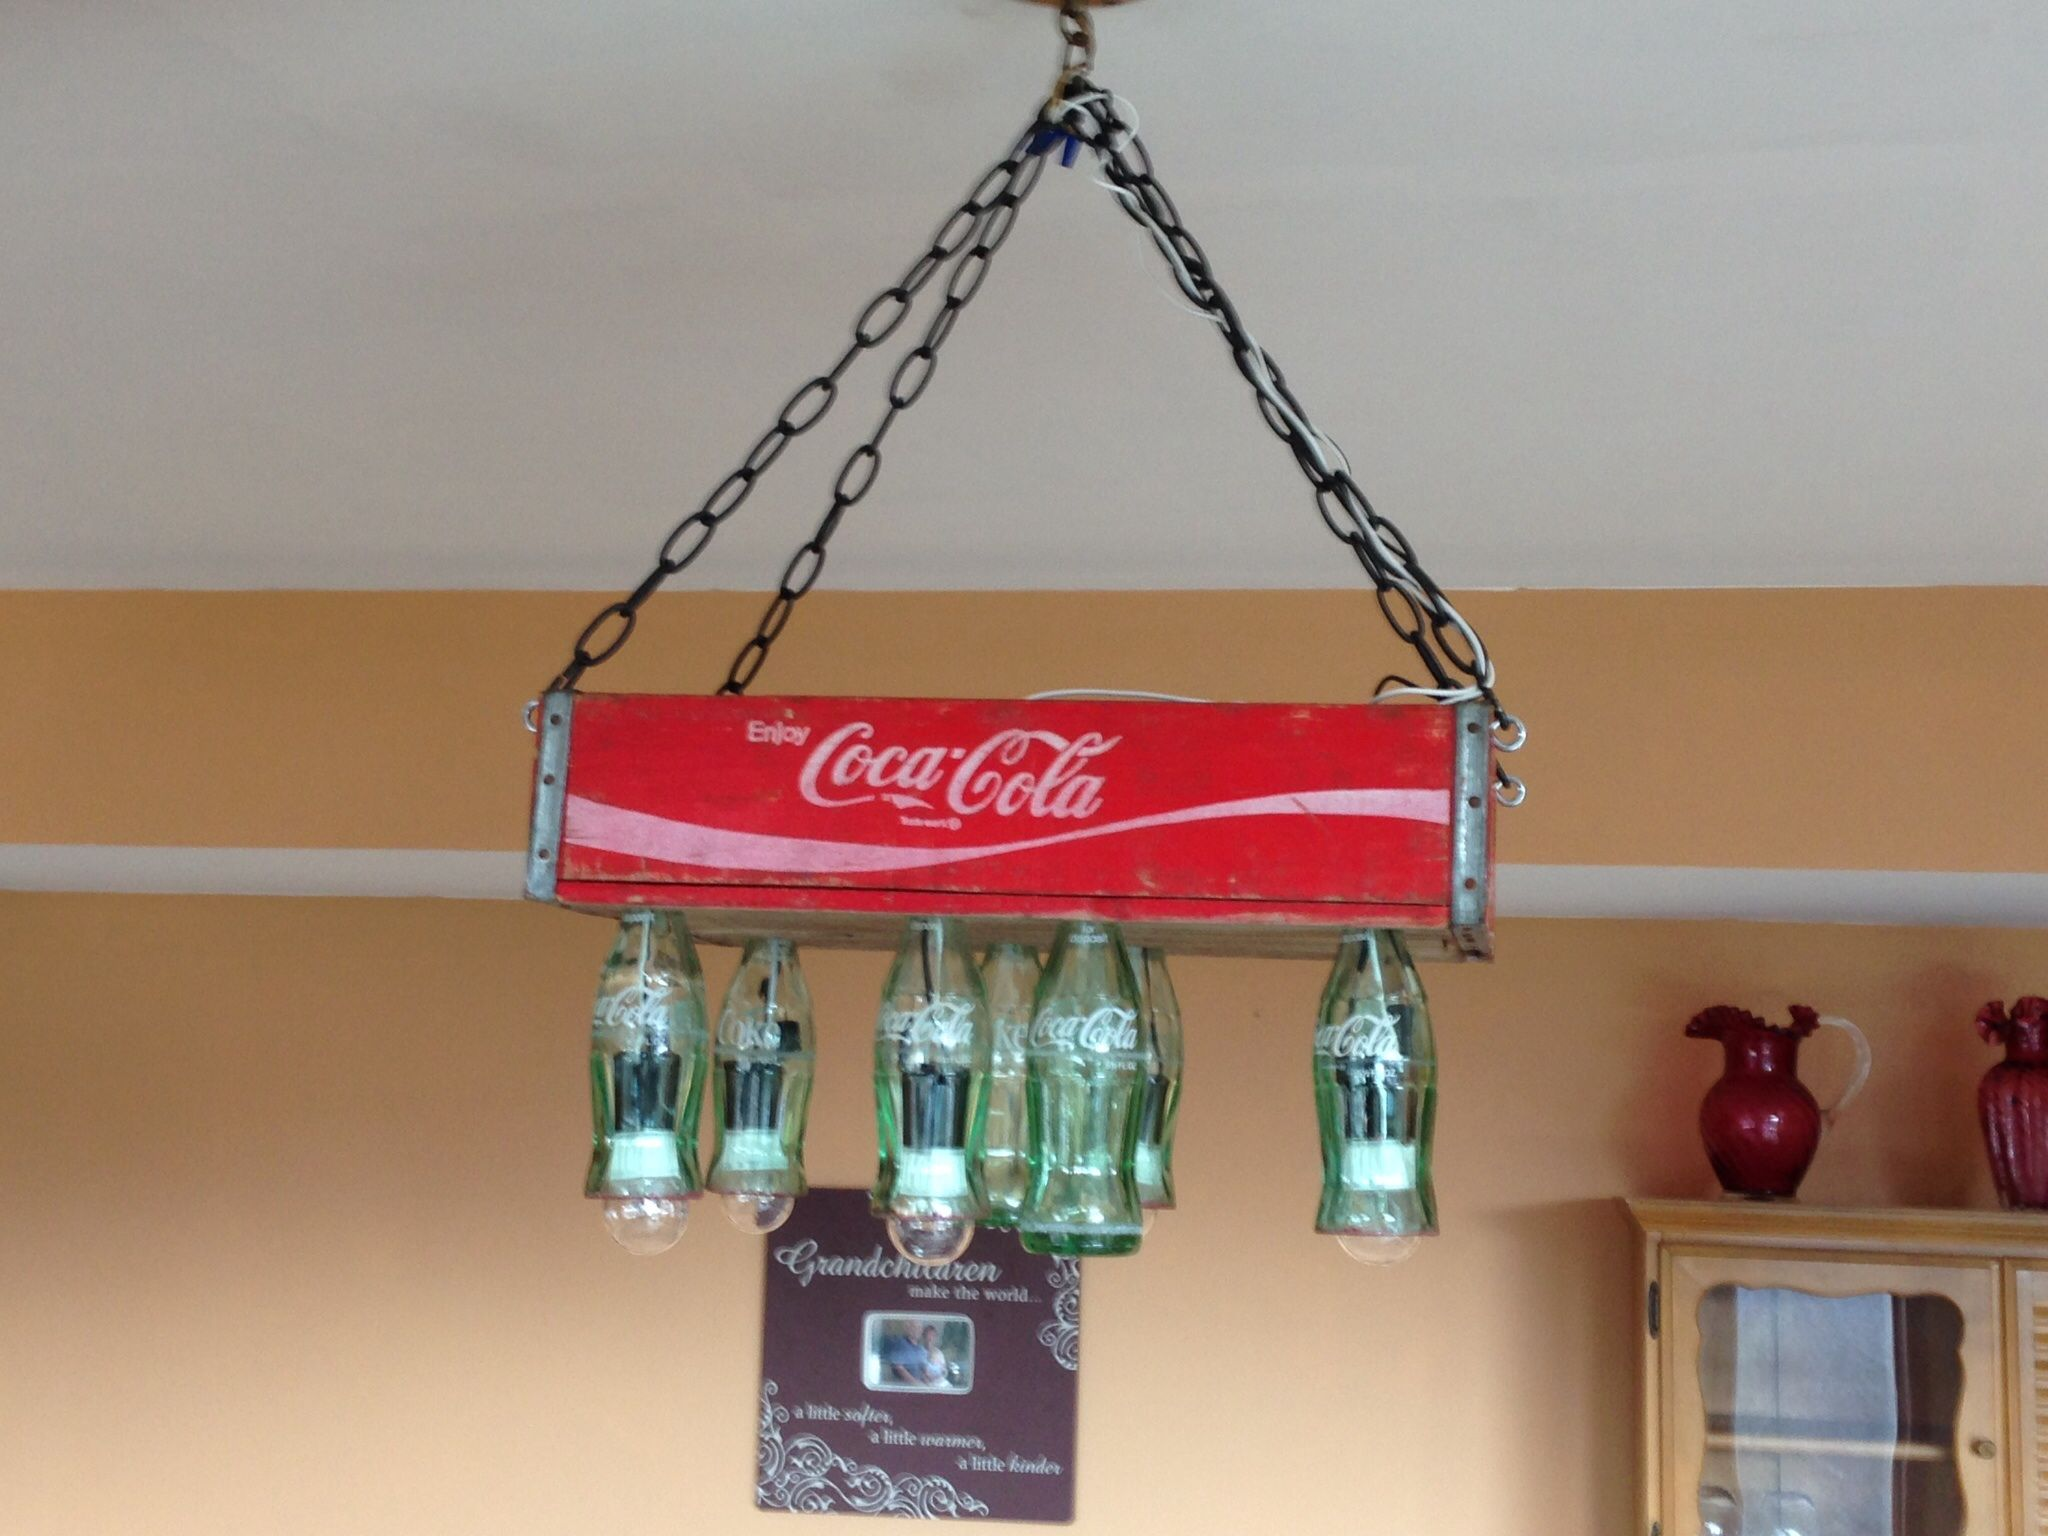 Old coco cola crate and bottles made into light fixture for over the old coco cola crate and bottles made into light fixture for over the pool table arubaitofo Image collections